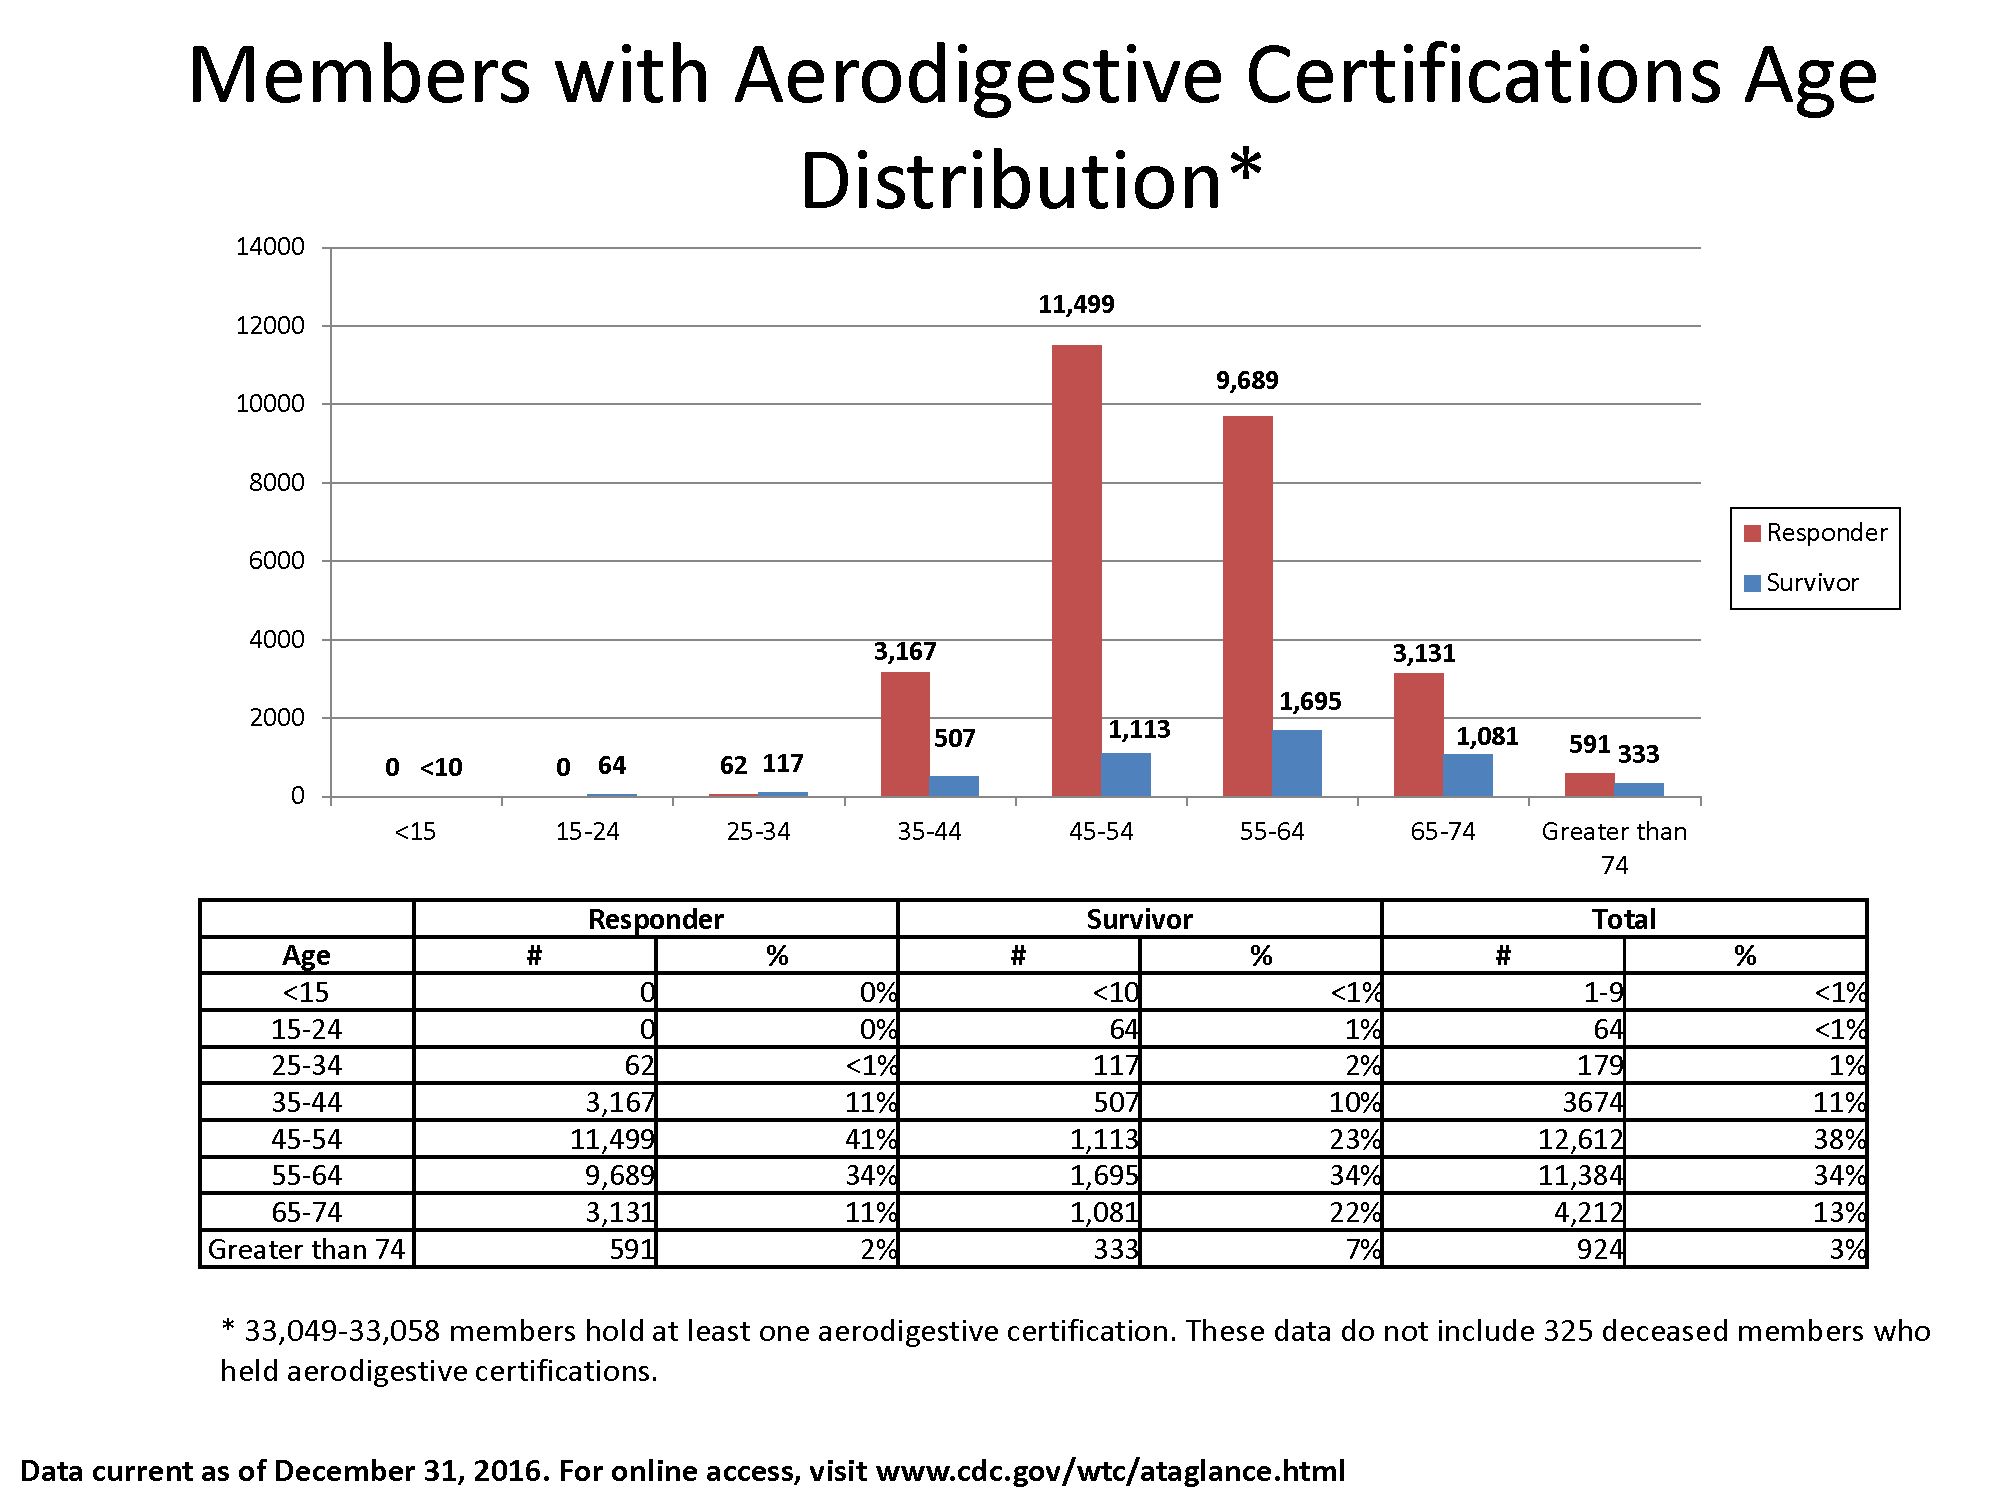 Bar chart of data in the table showing the number of members with aerodigestive certifications by Responder and Survivor and age bracket.